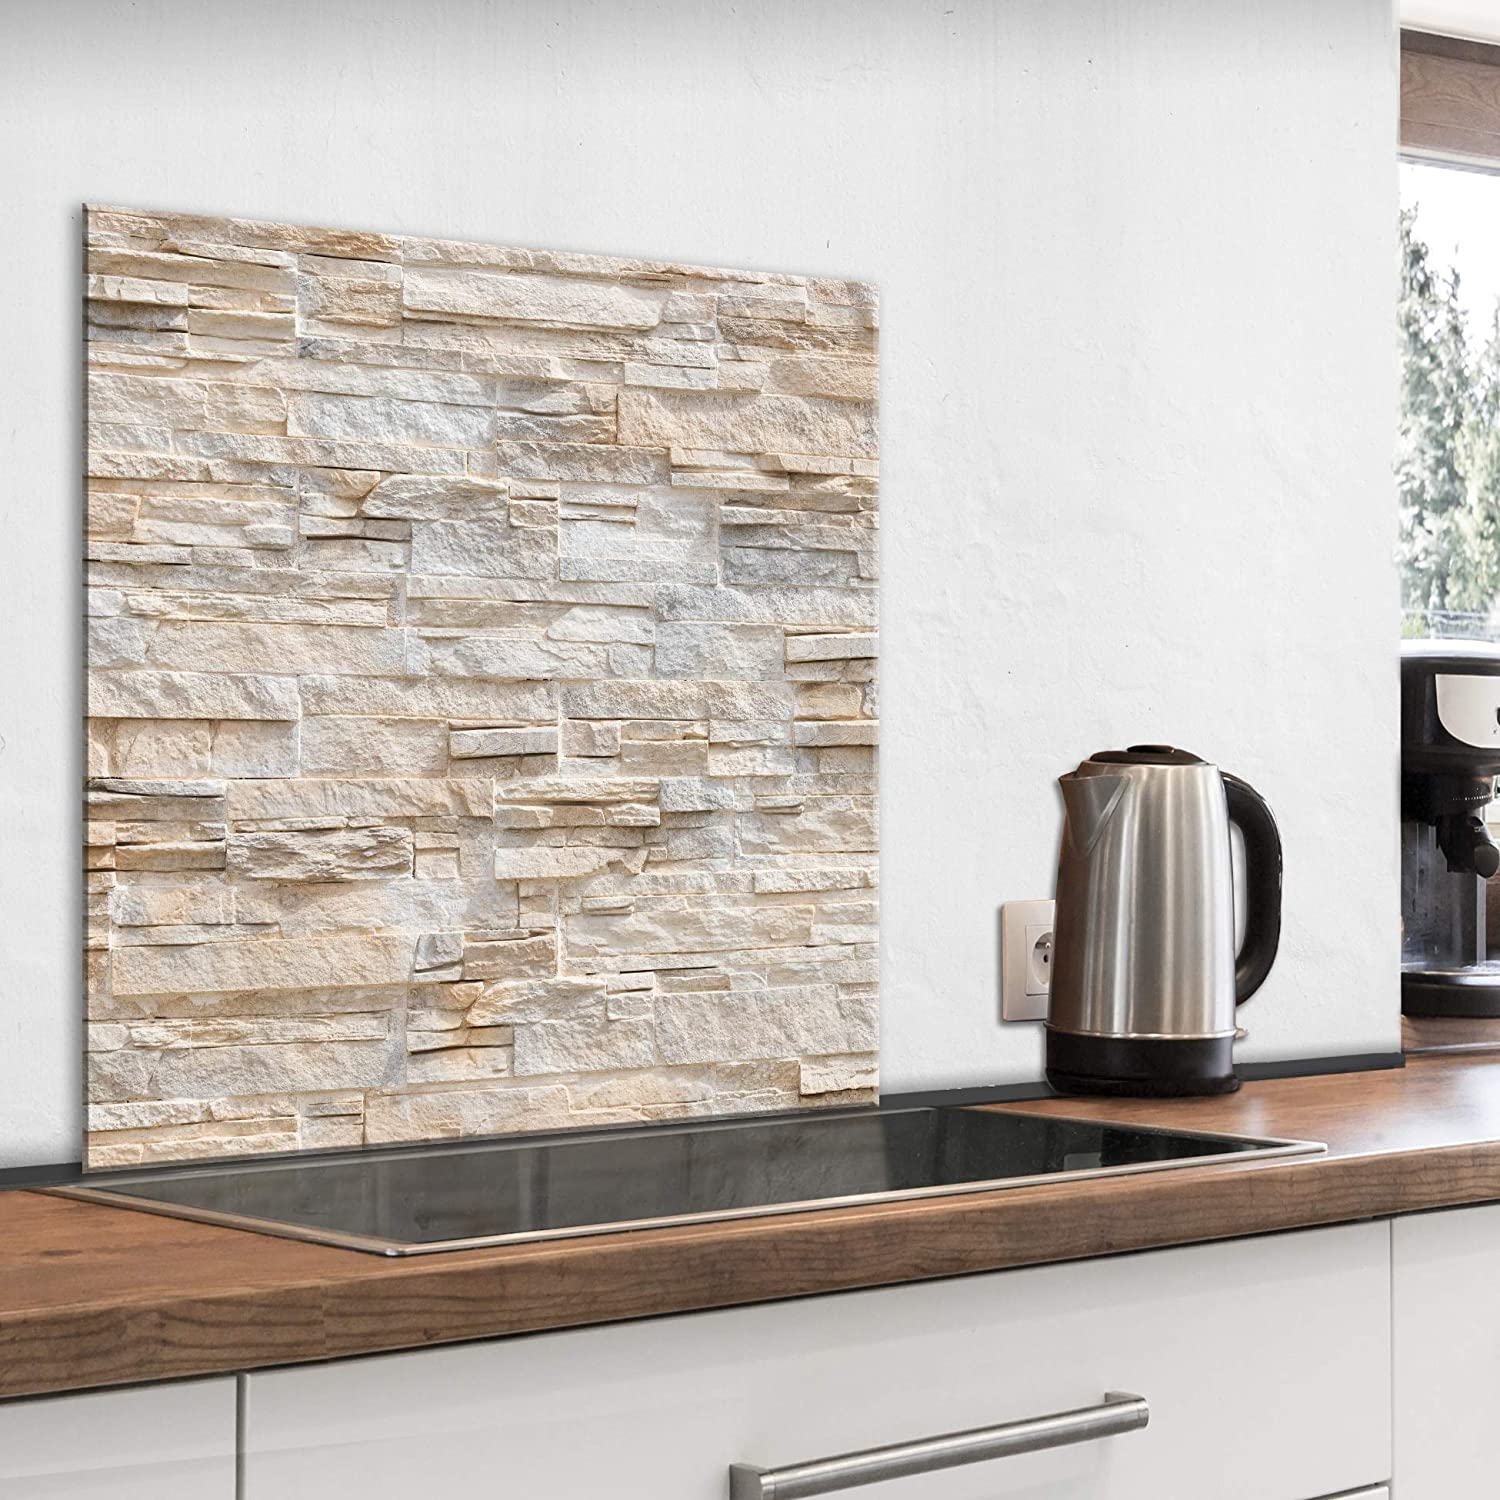 Clear Toughened Heat Resistant Glass Splashback No Holes Pre-Drilled Holes /& Fixings 10cm x 10cm Sample